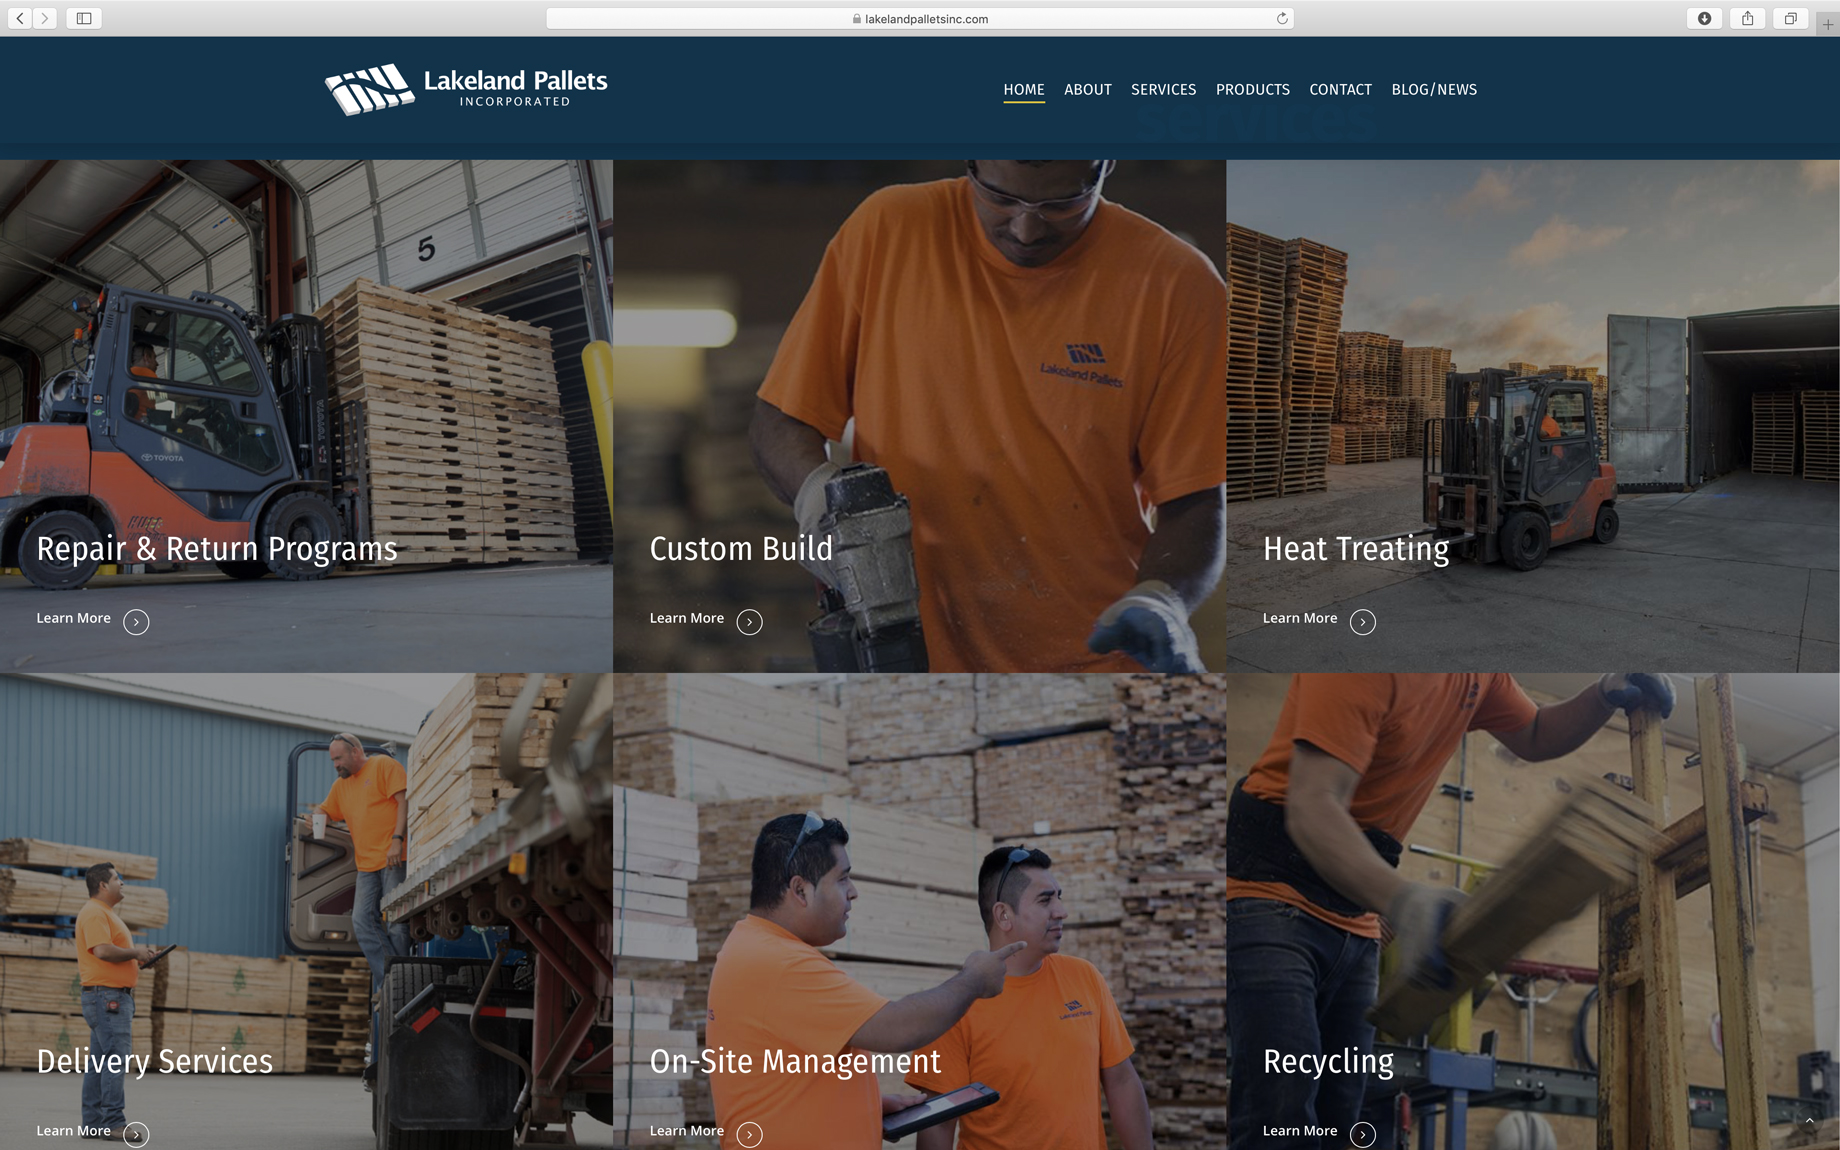 clean services website page design with high-quality, custom photography